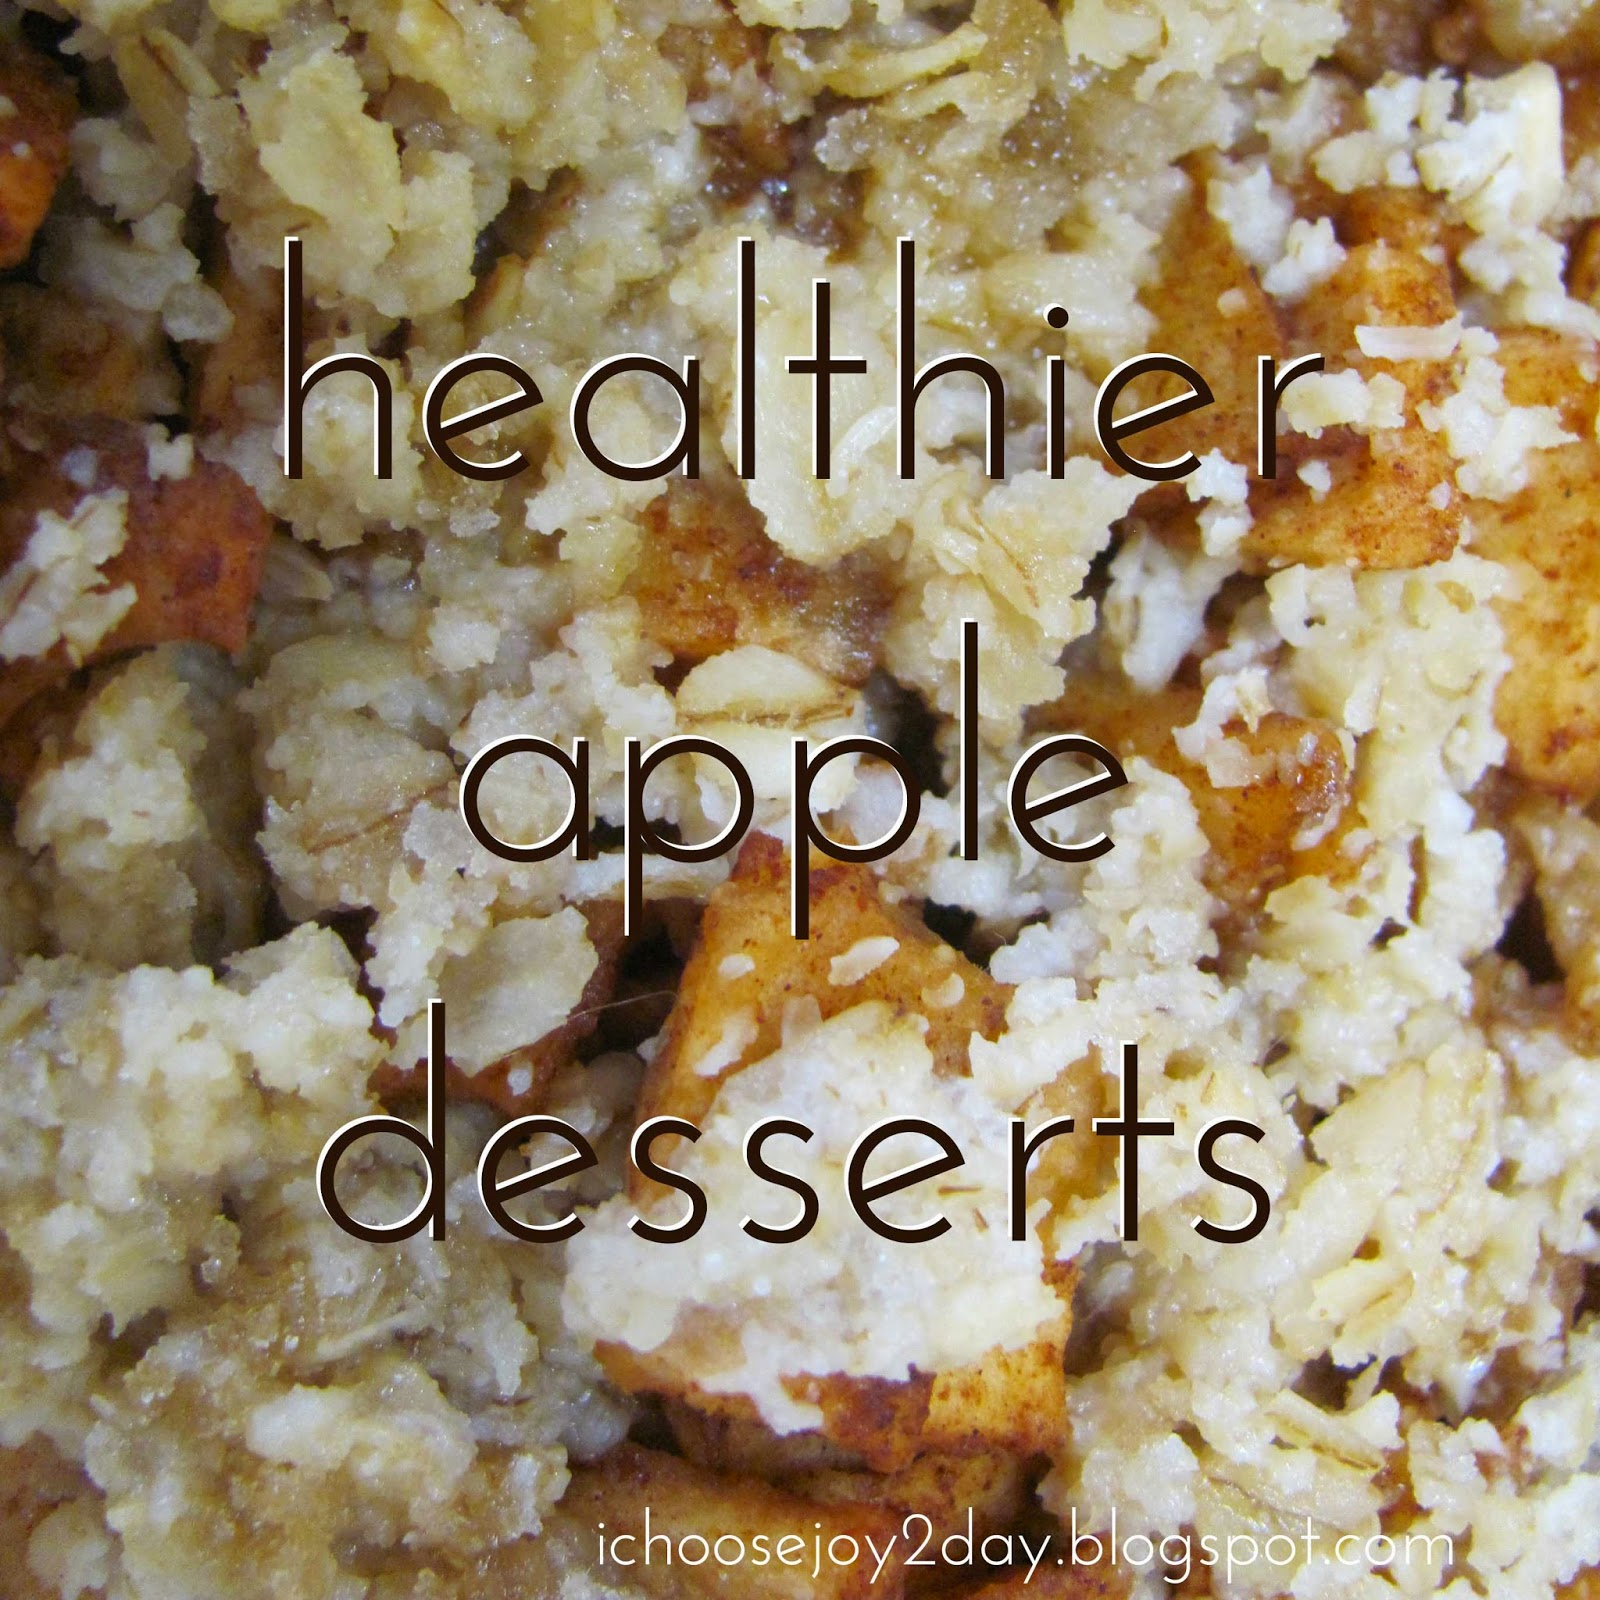 http://ichoosejoy2day.blogspot.com/2014/10/baking-fall-treats-healthier-apple.html